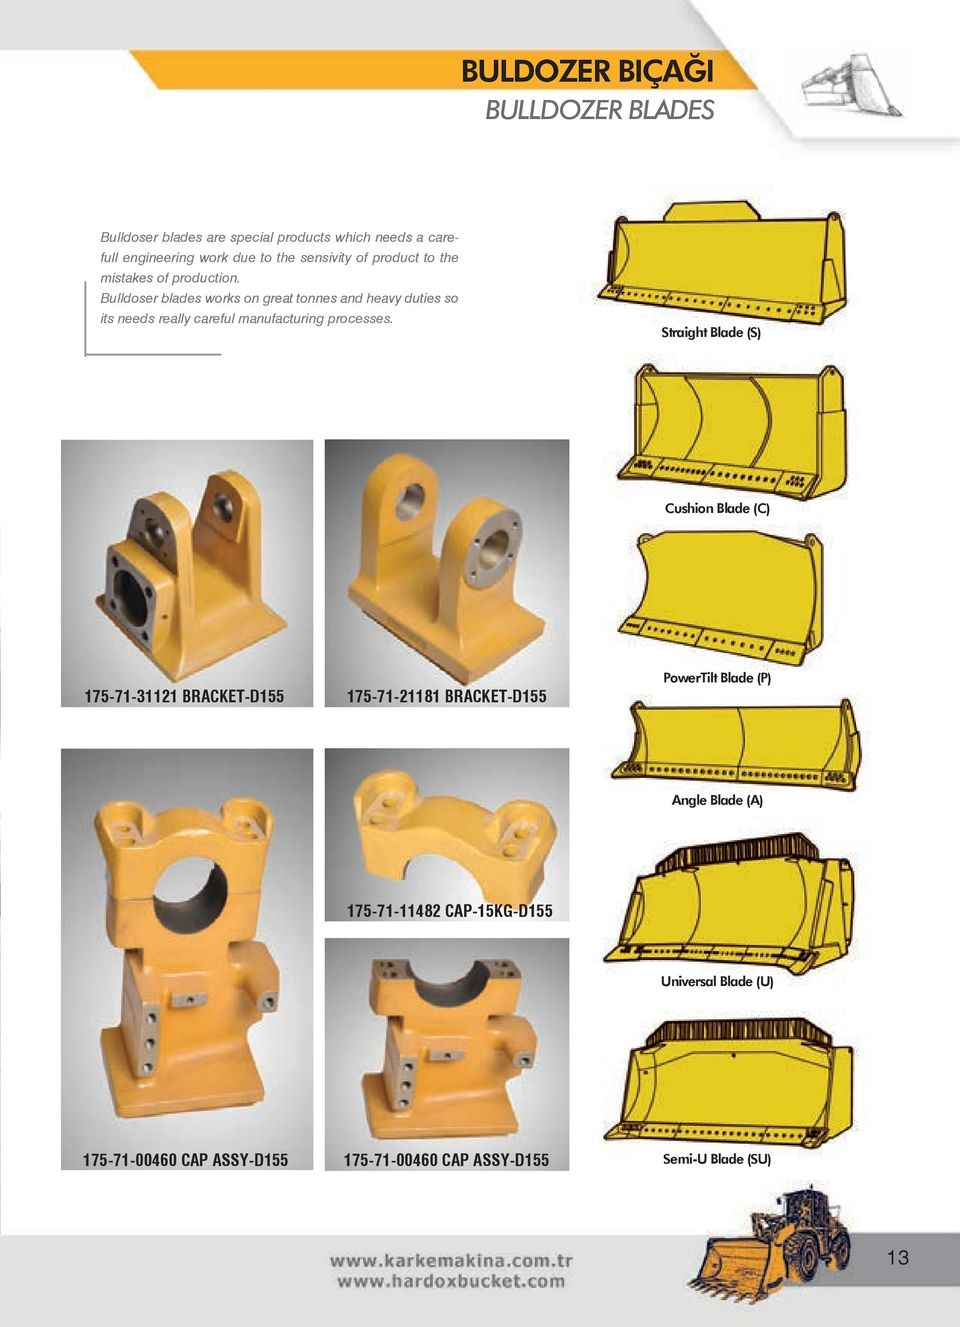 Bulldoser blades works on great tonnes and heavy duties so its needs really careful manufacturing processes.